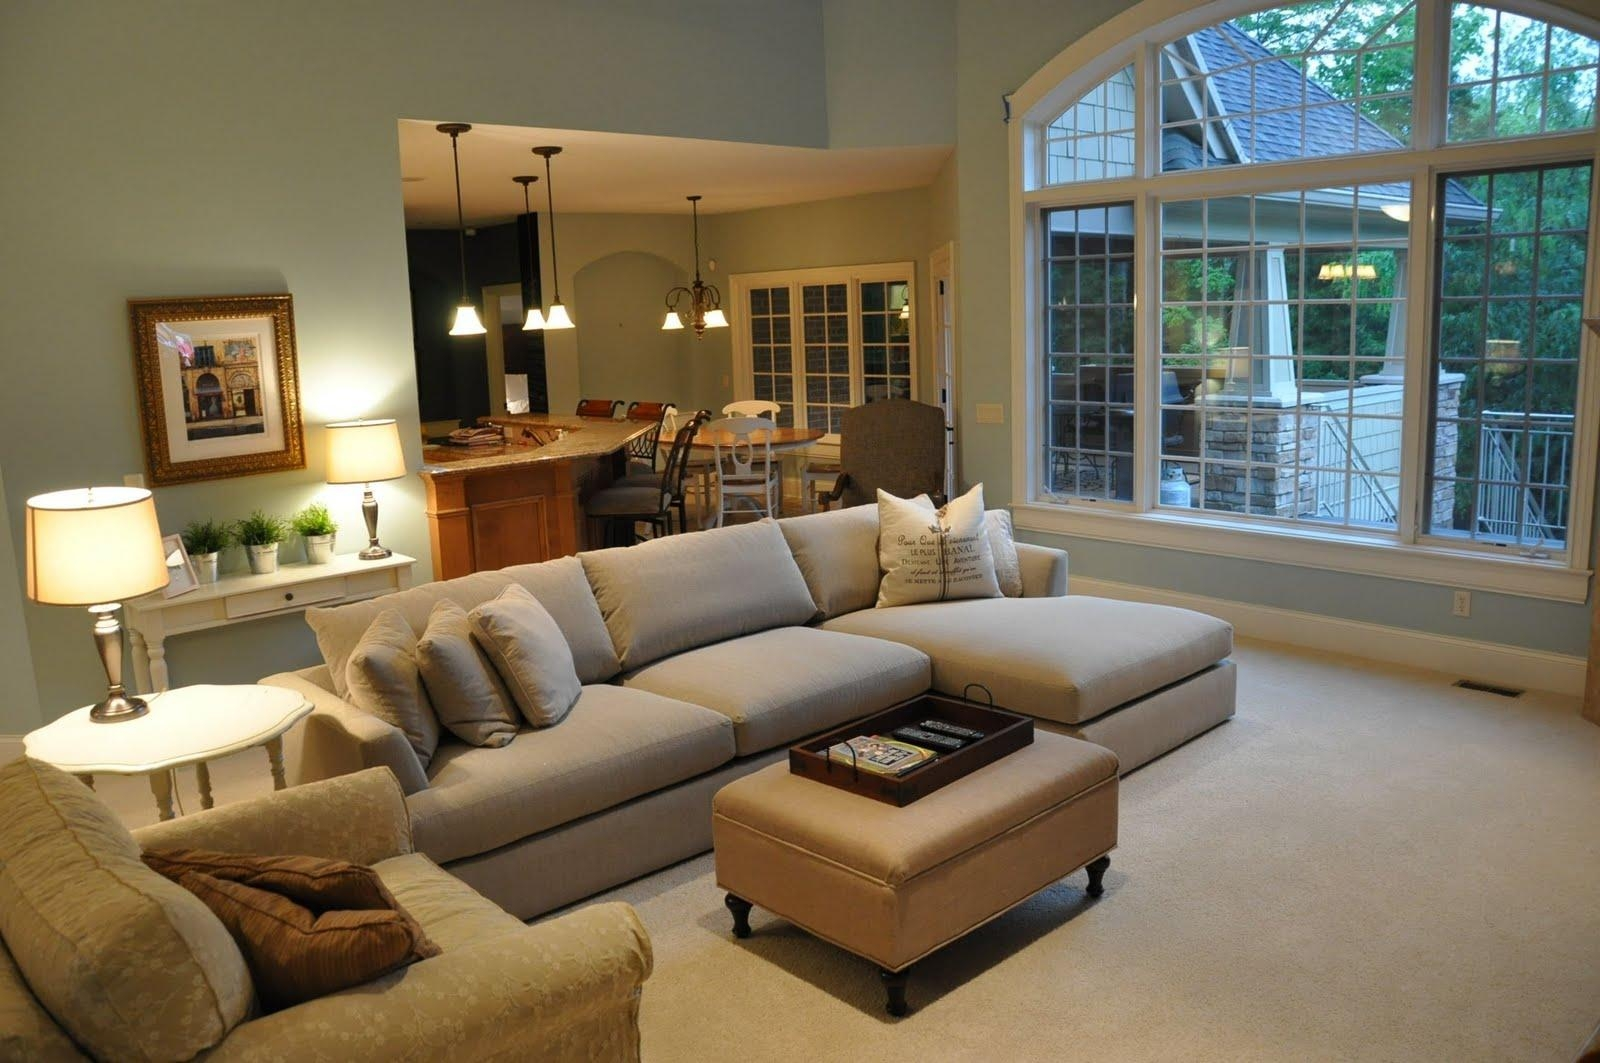 The Sectional Has Landed – Evolution Of Style Intended For Arhaus Emory Sectional (View 3 of 15)